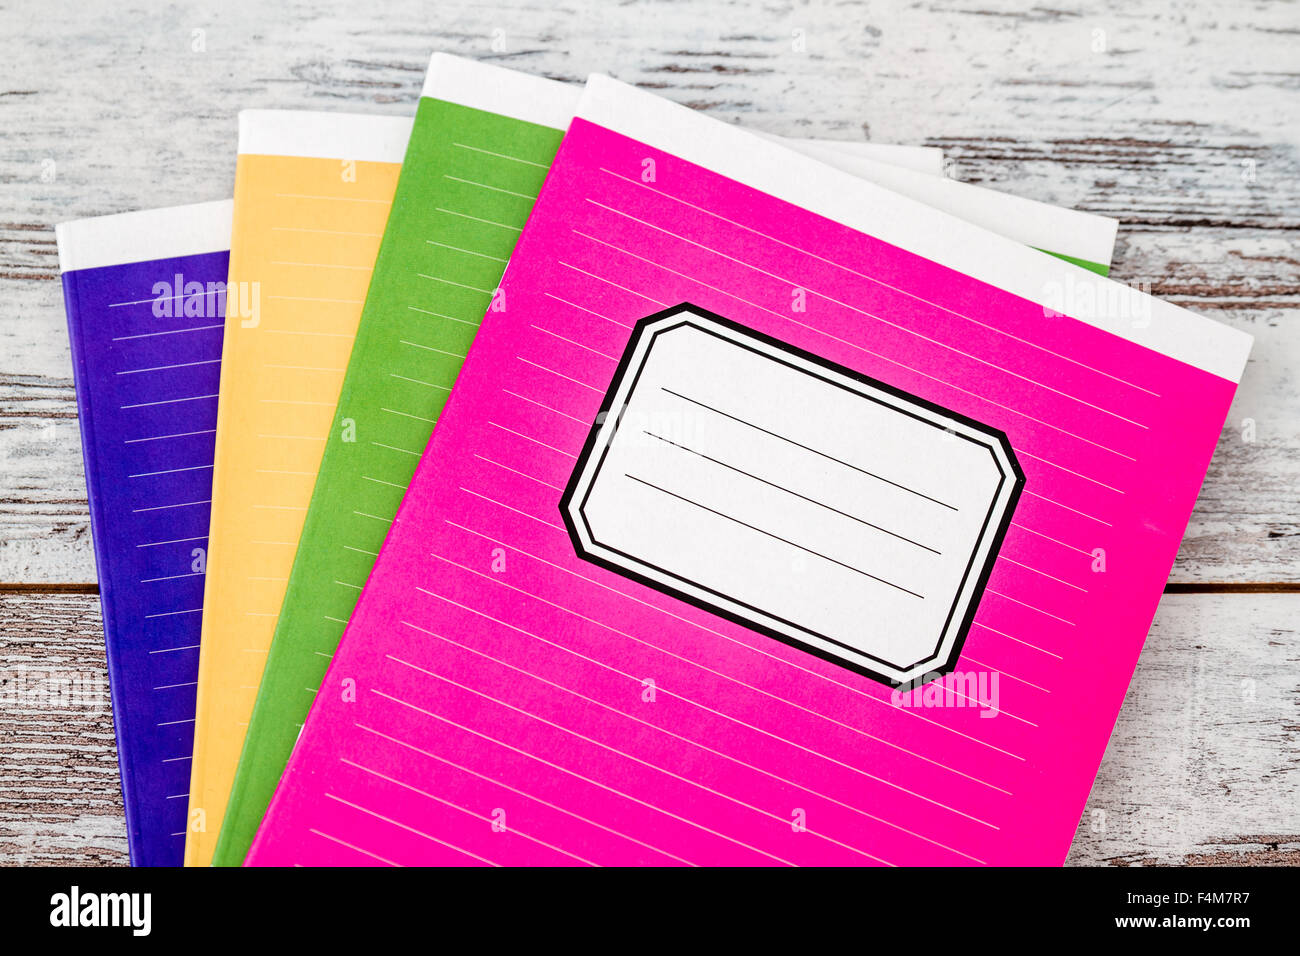 colorful notebooks with name label on cover on white wooden stock